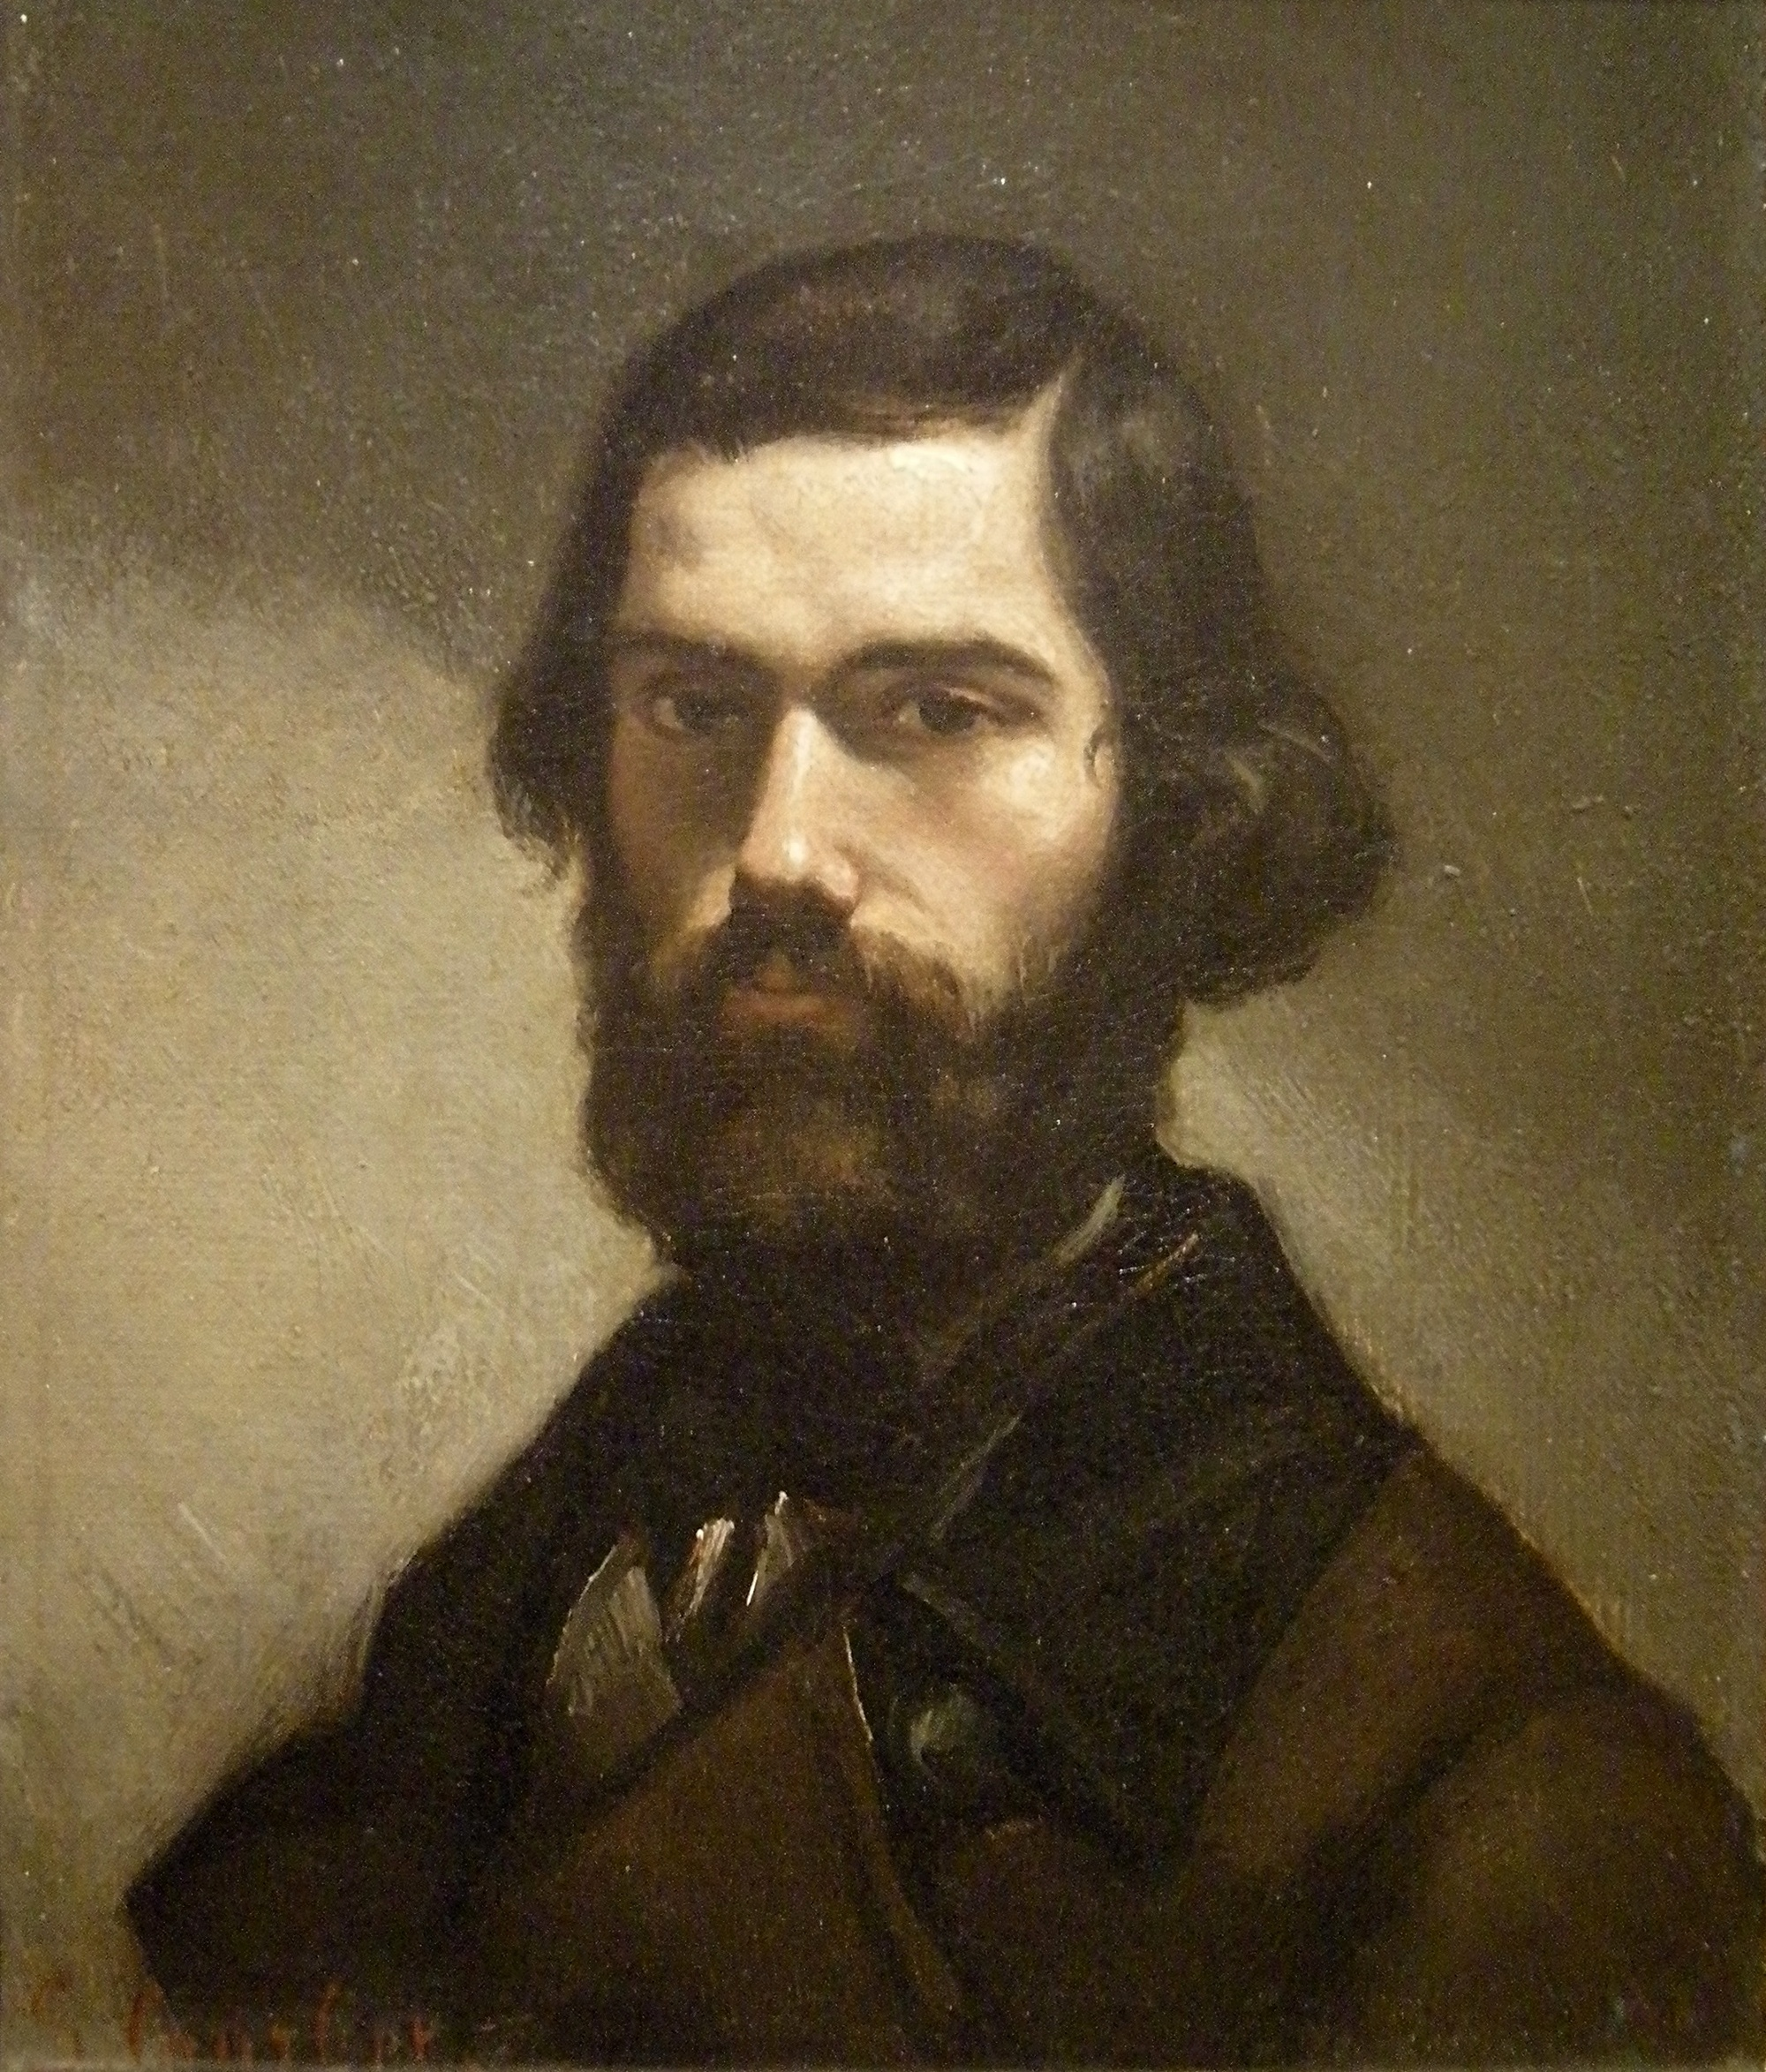 Jules Vallès by [[Gustave Courbet]]